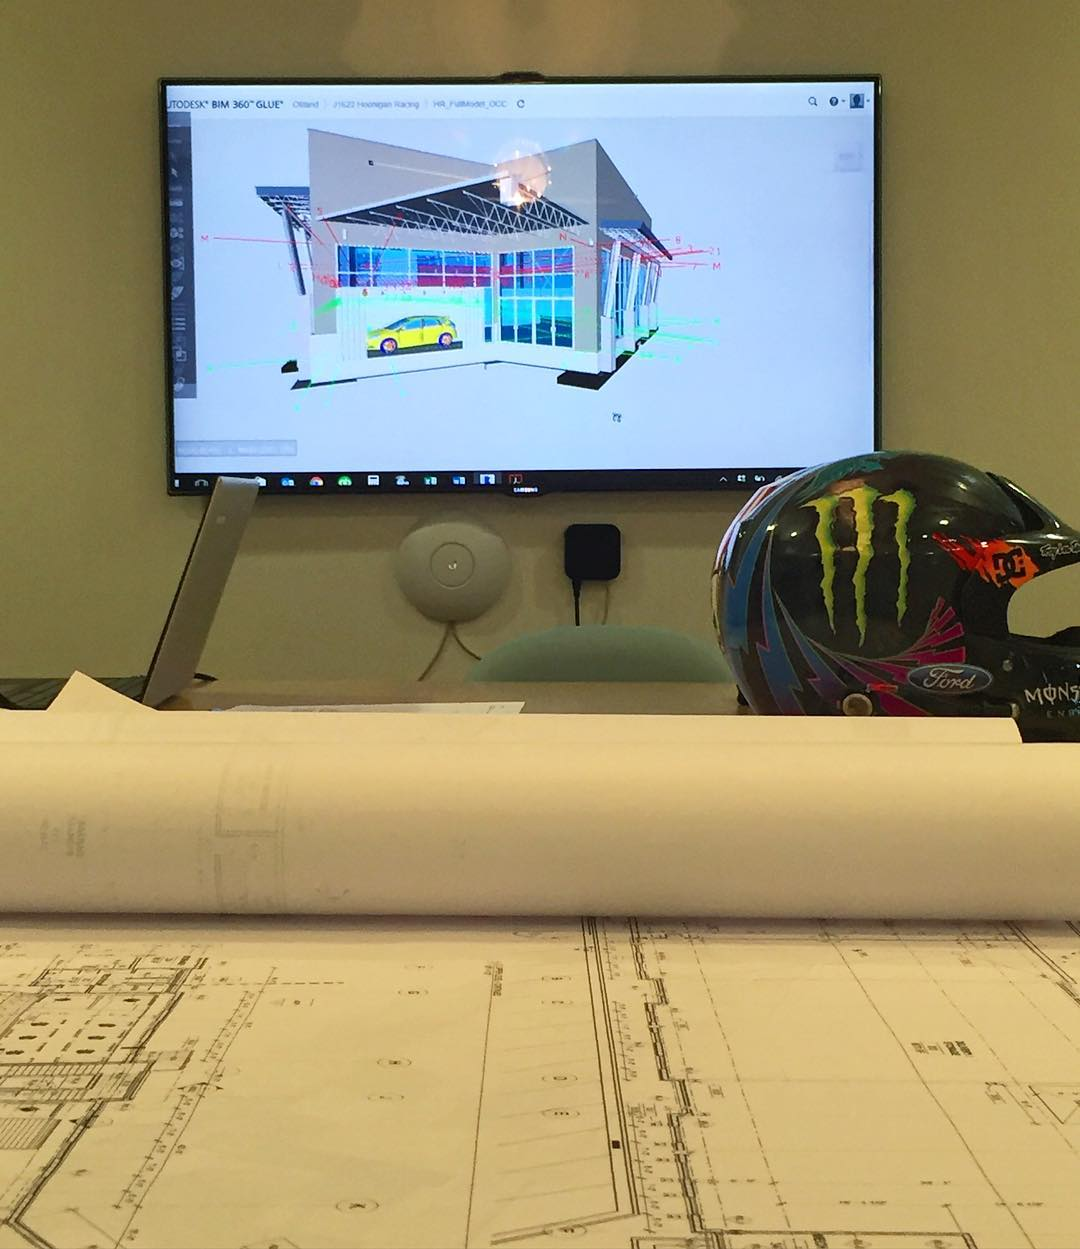 My view from the #HRD_HQ conference room table yesterday, whilst reviewing the plans for our new @HooniganRacing Headquarters building. 3D renderings and architectural plans are fun. Random fact: I studied architecture all through high school, did a...